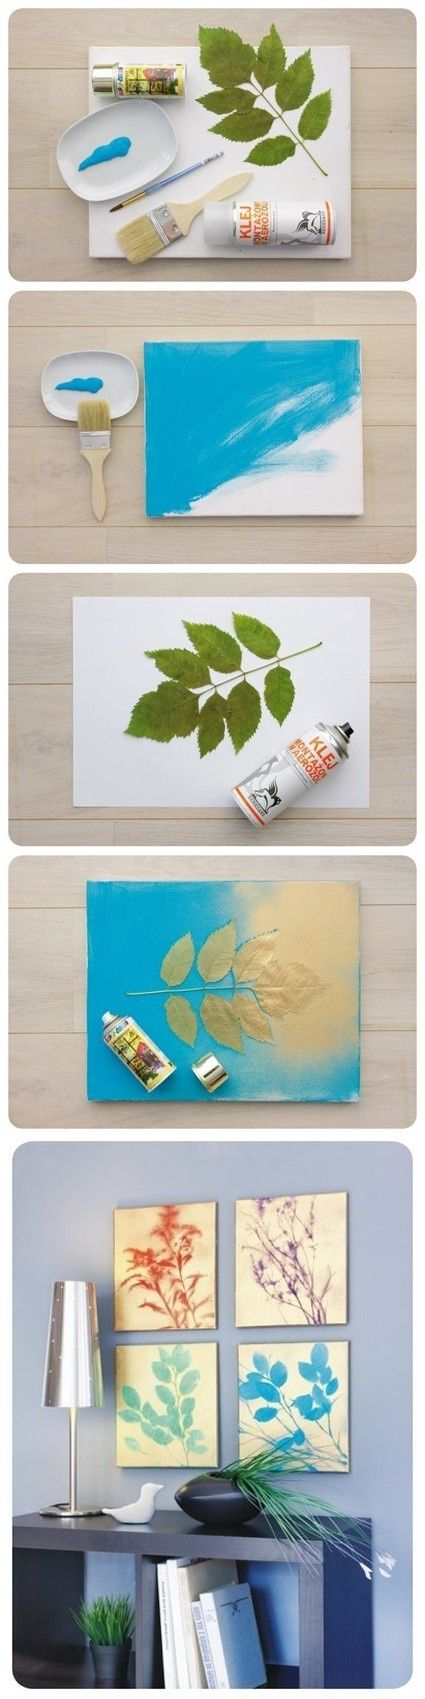 Super easy diy art project for home neat ideas pinterest super easy diy art project for home solutioingenieria Images